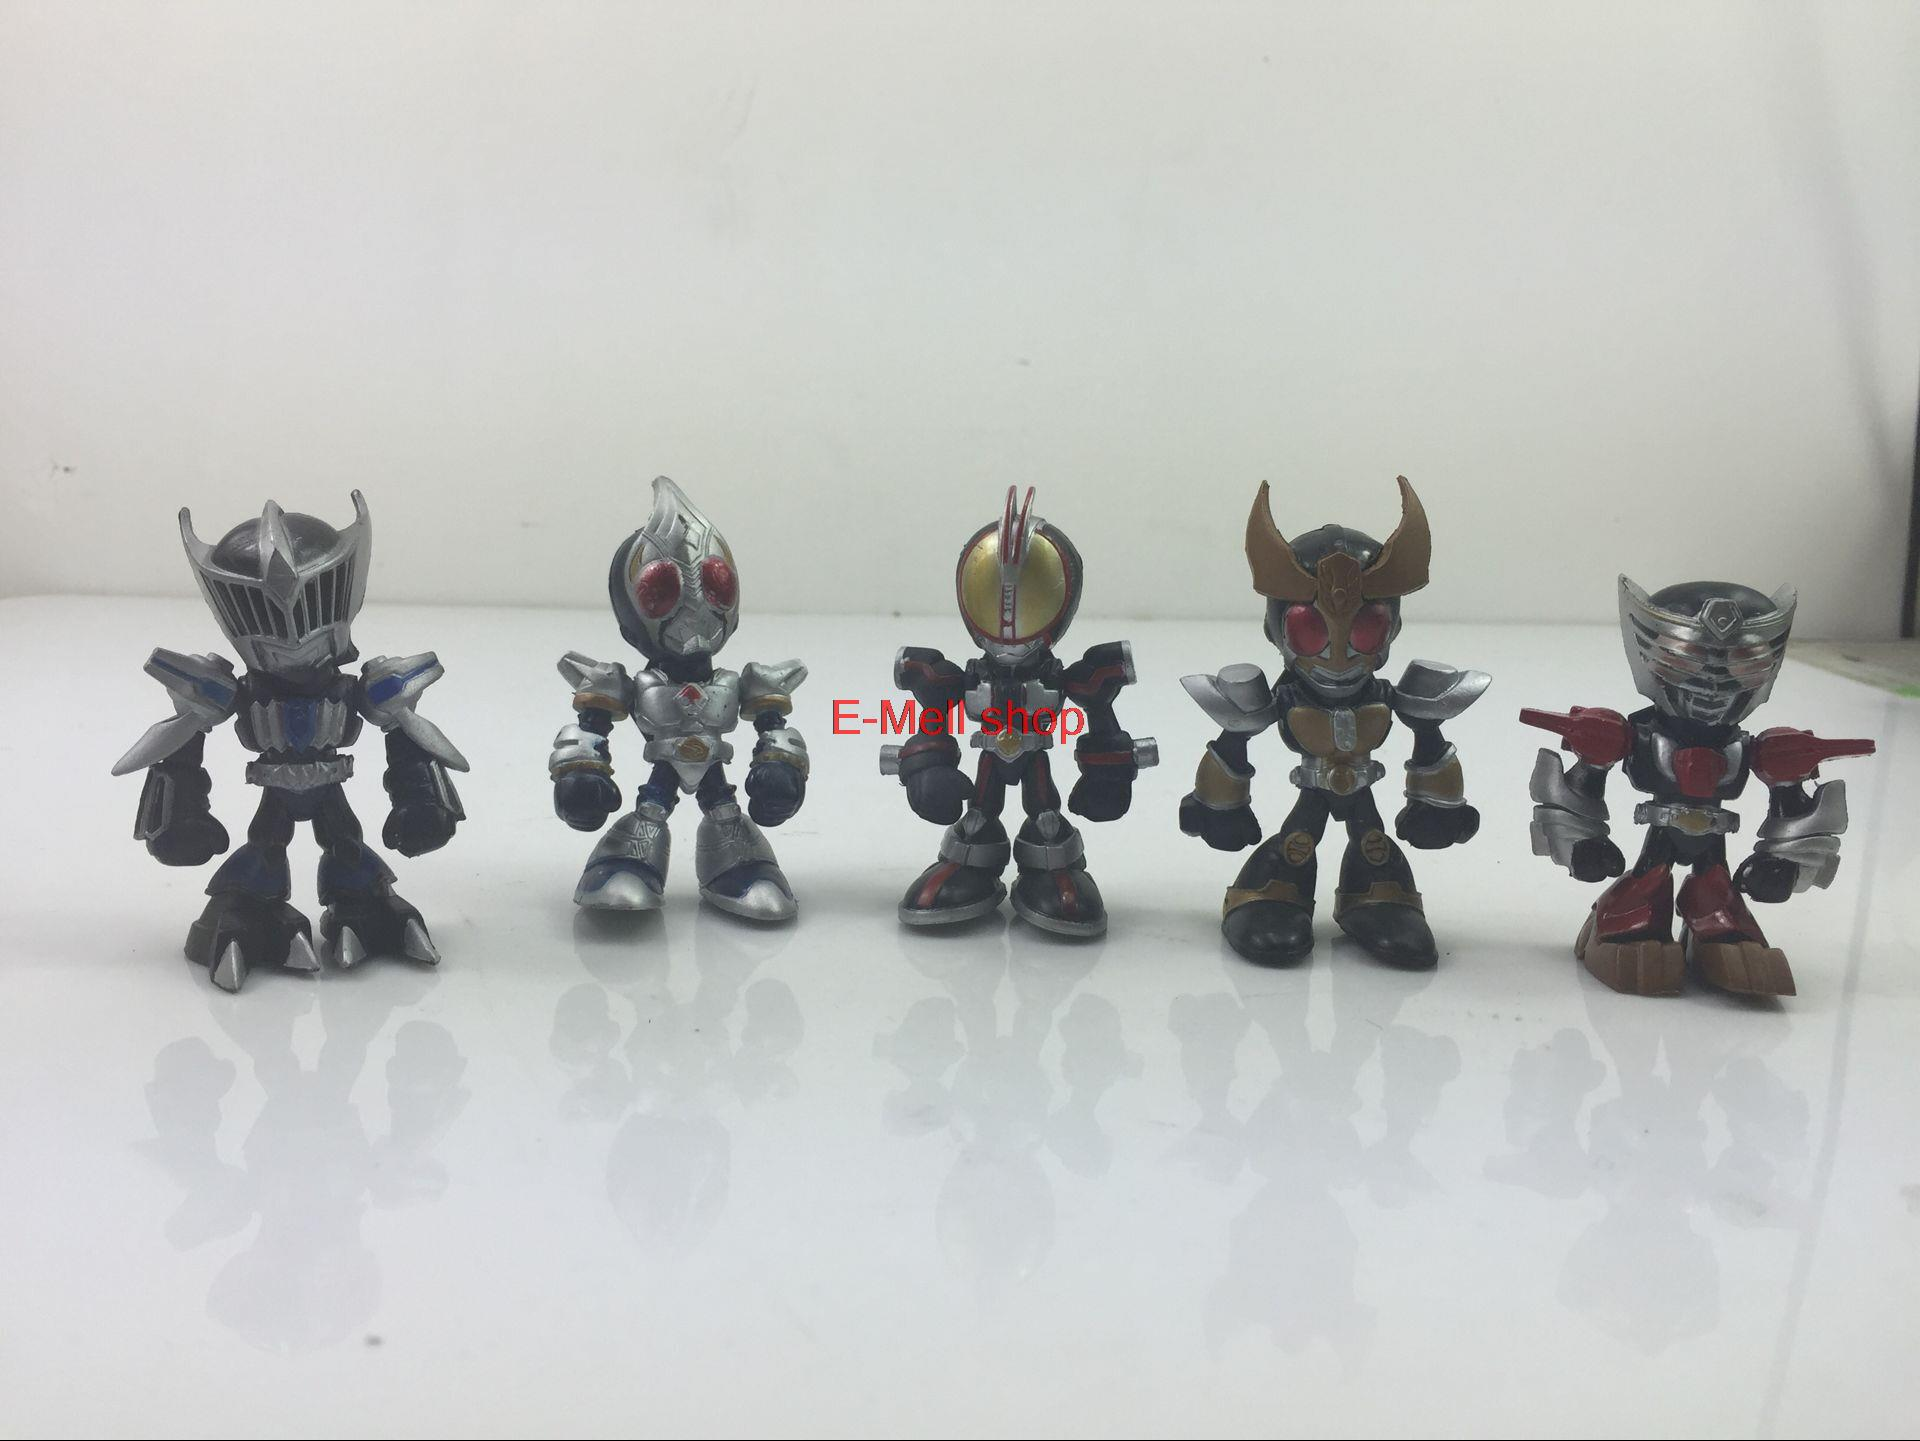 ORZ Free Shipping Original model Banpresto Japan Anime Masked Rider Kamen Rider Black PVC Action Figure Toys 5cm 59pcs/set 100% original banpresto internal structure collection figure masked rider 1